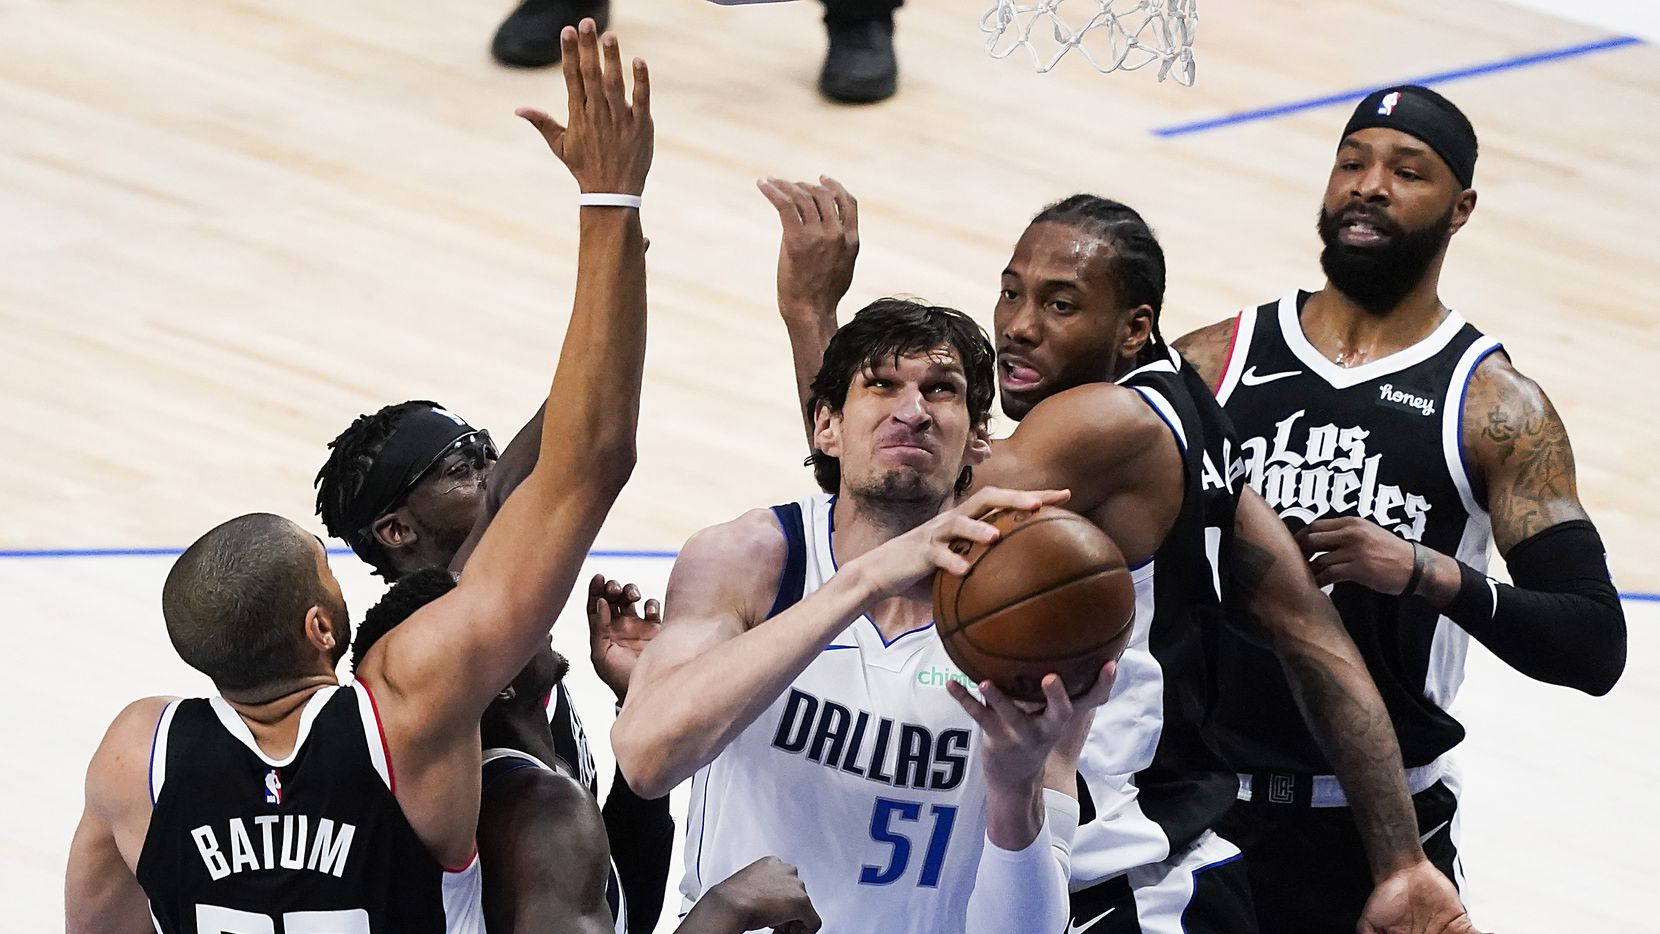 Dallas Mavericks center Boban Marjanovic (51) goes to the basket as LA Clippers forward Kawhi Leonard (2) defends during the first quarter of an NBA playoff basketball game at American Airlines Center on Sunday, May 30, 2021, in Dallas.